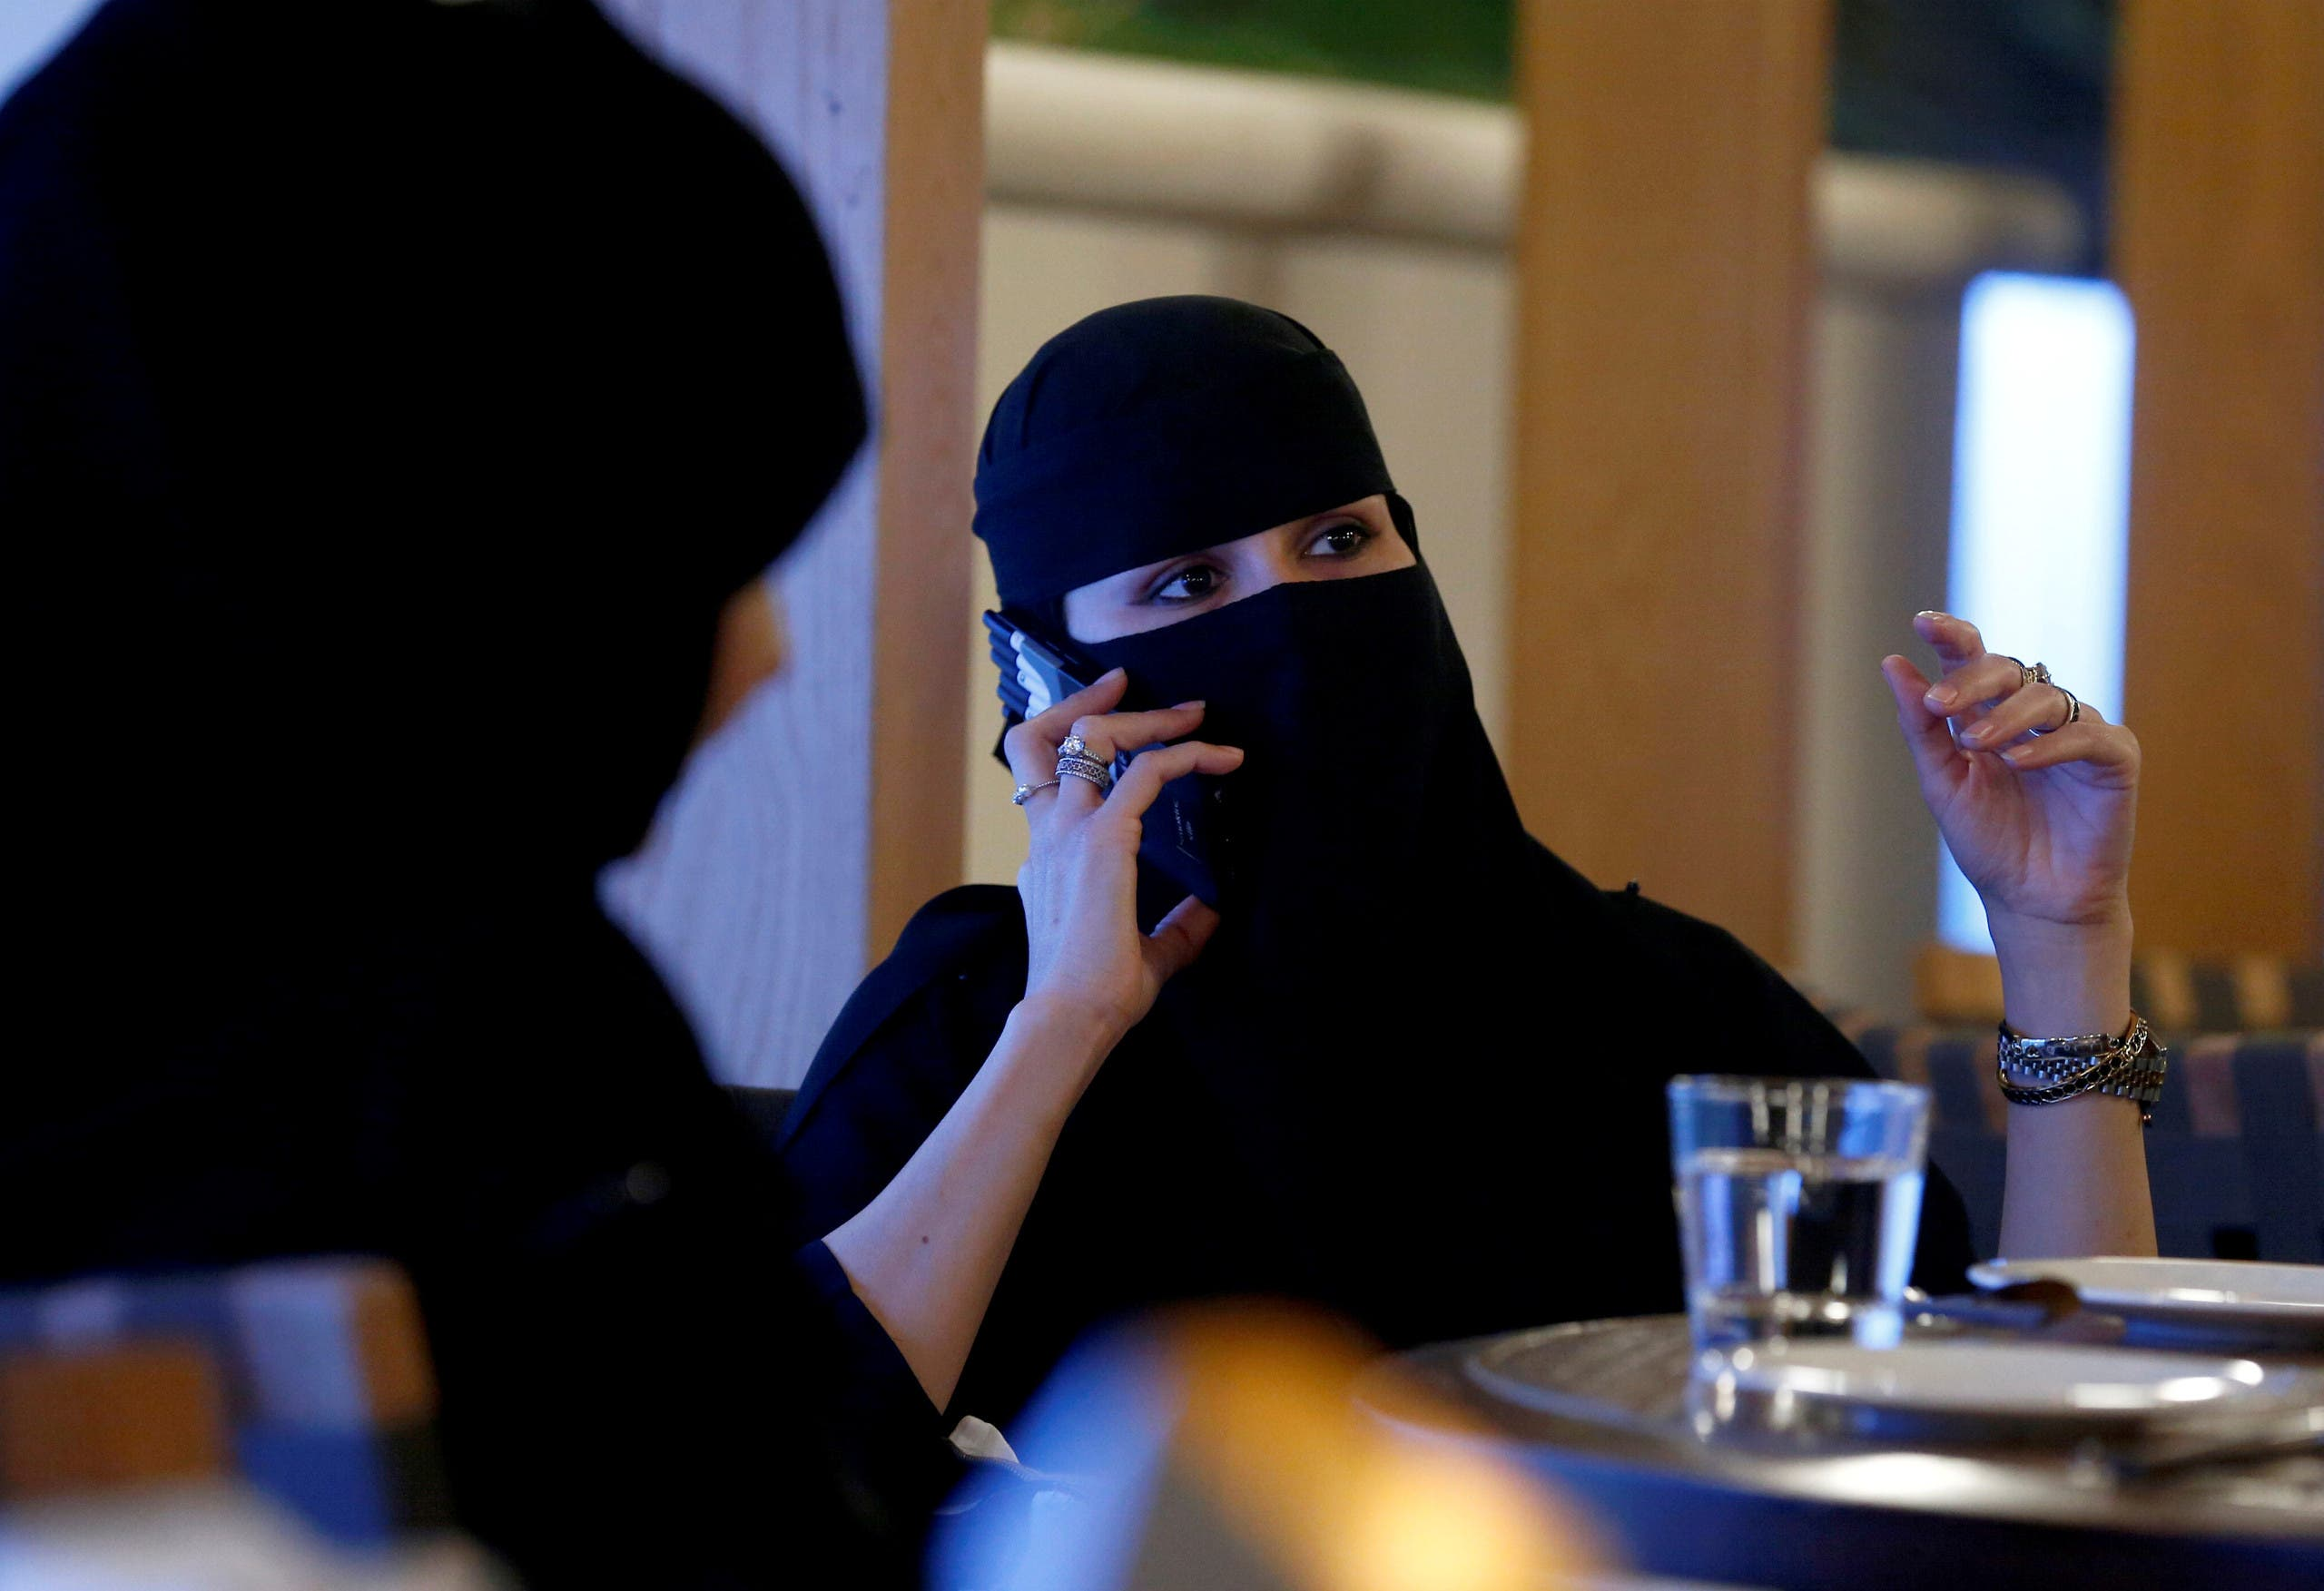 A woman speaks on a mobile phone in a cafe in Riyadh, Saudi Arabia October 6, 2016. (Reuters)